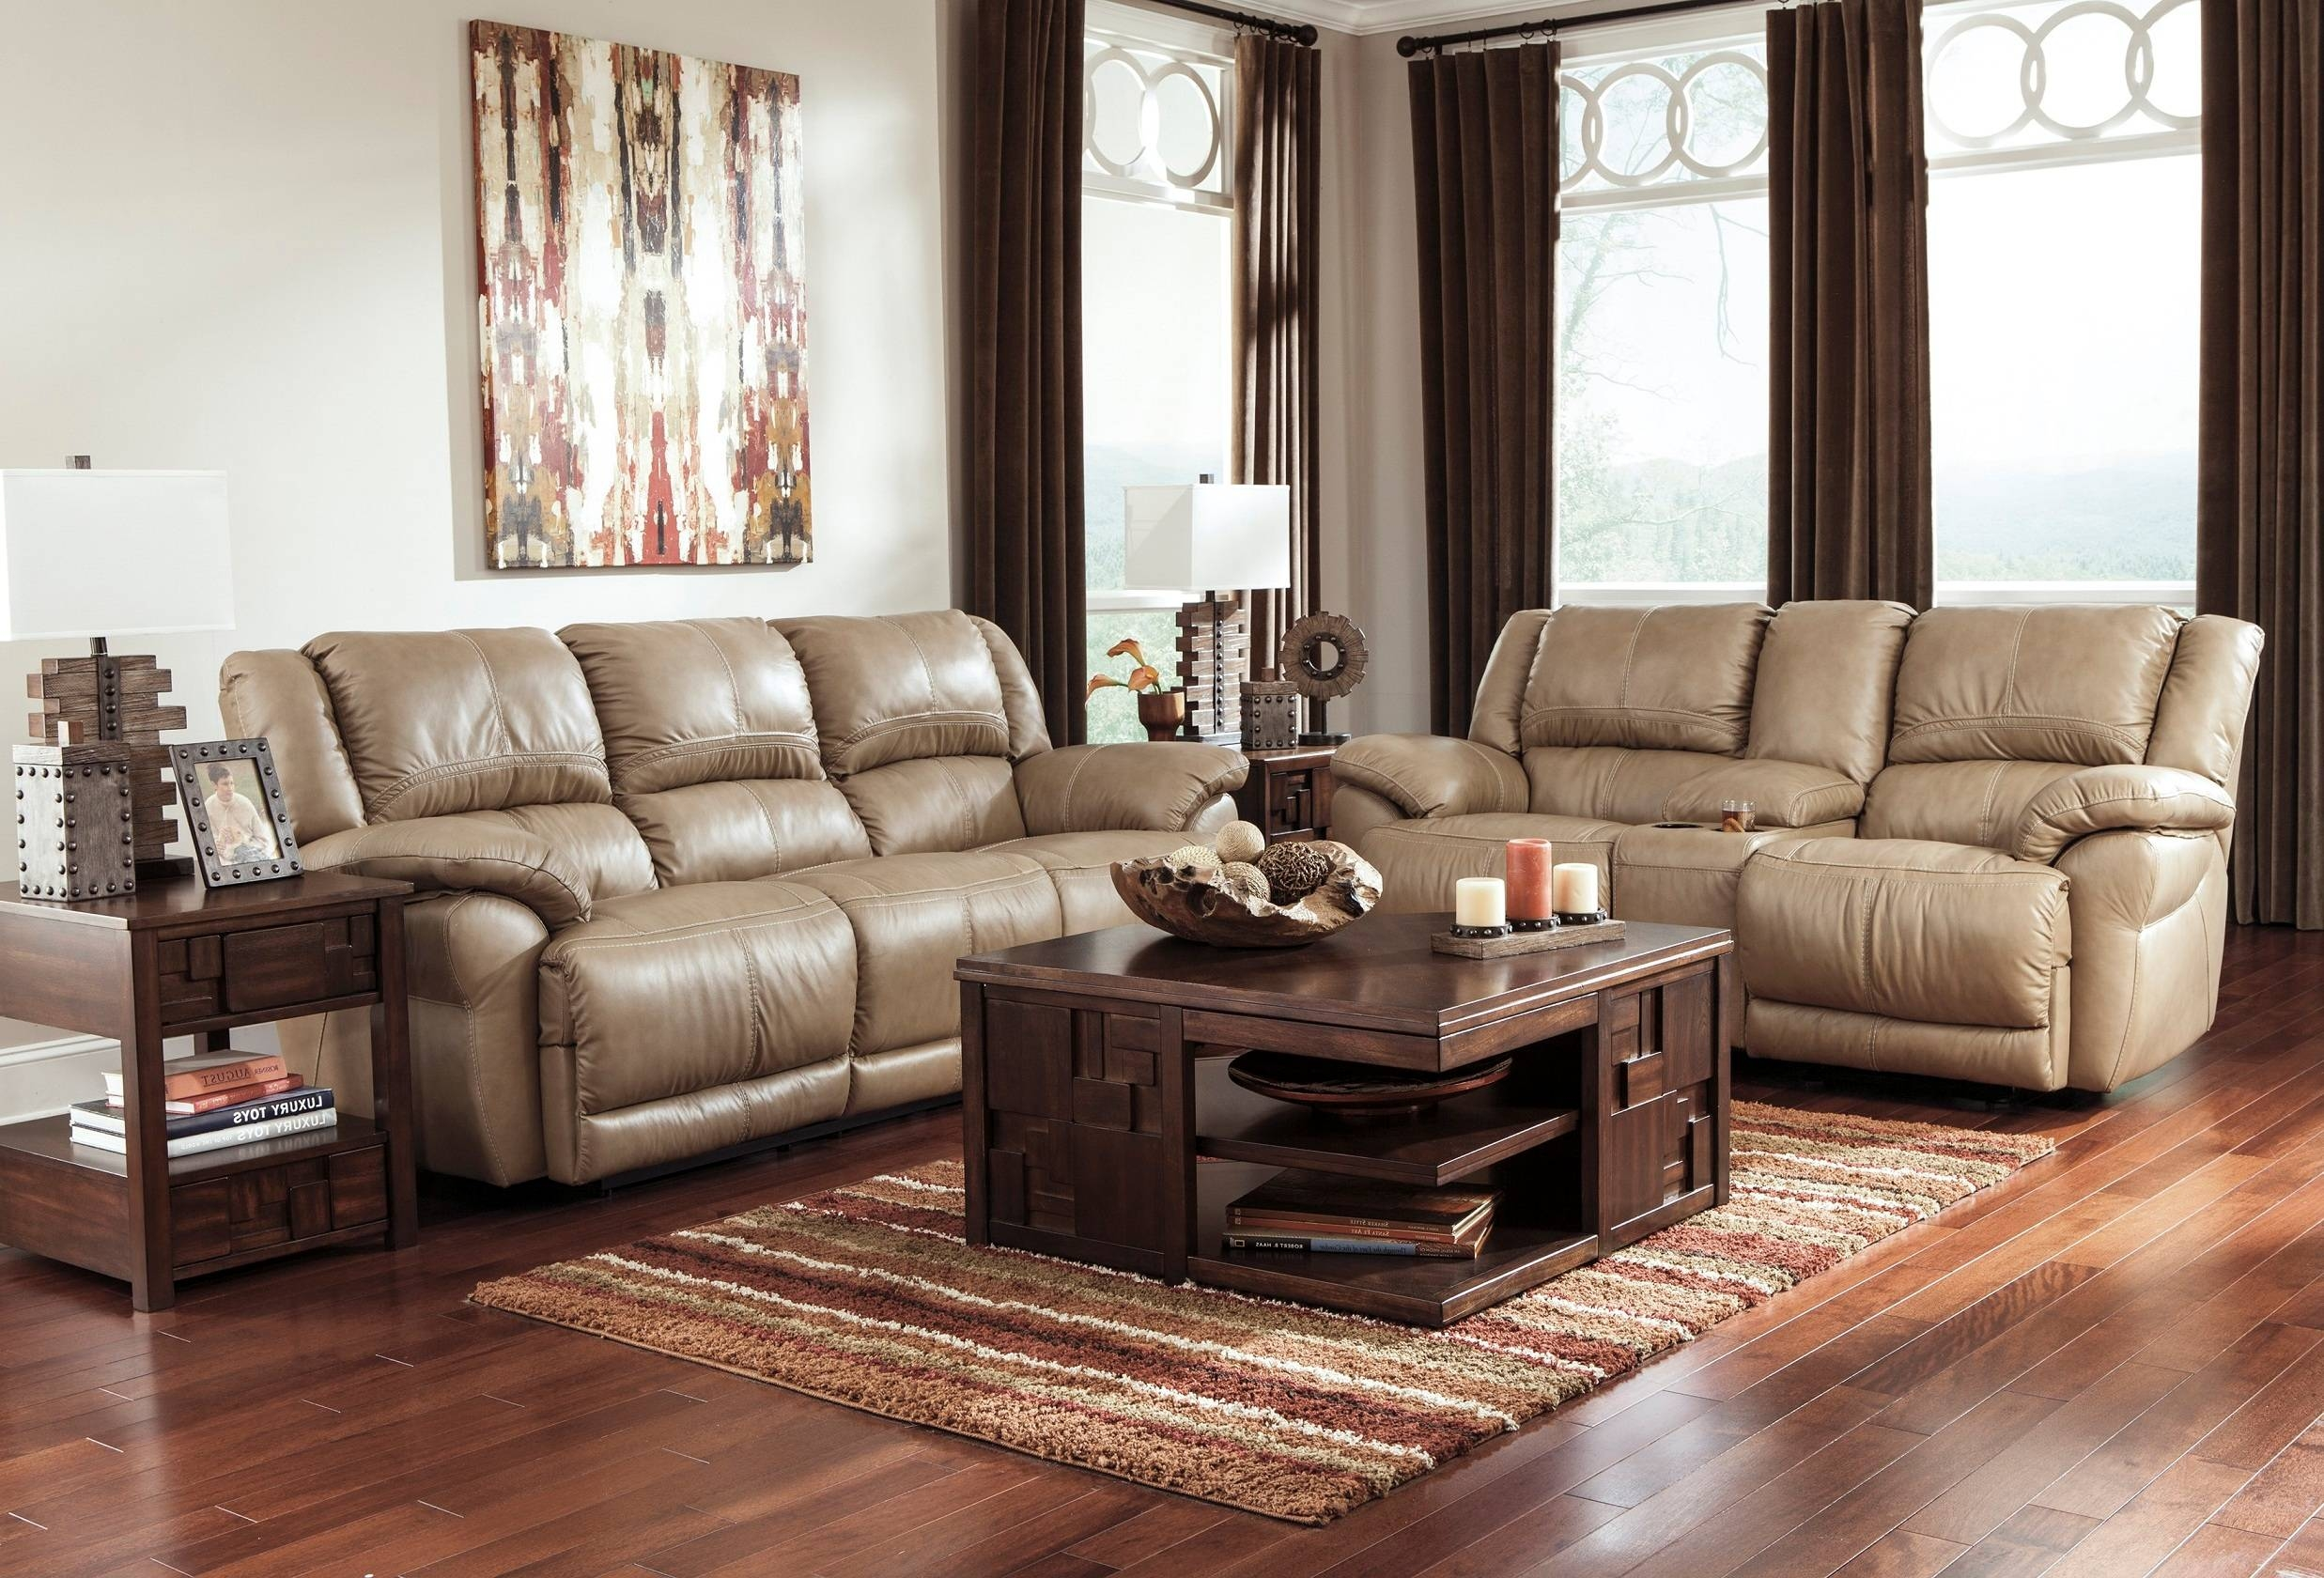 Furniture: Full Grain Leather Sectional | Costco Leather Sofa With Regard To Caramel Leather Sofas (View 6 of 15)